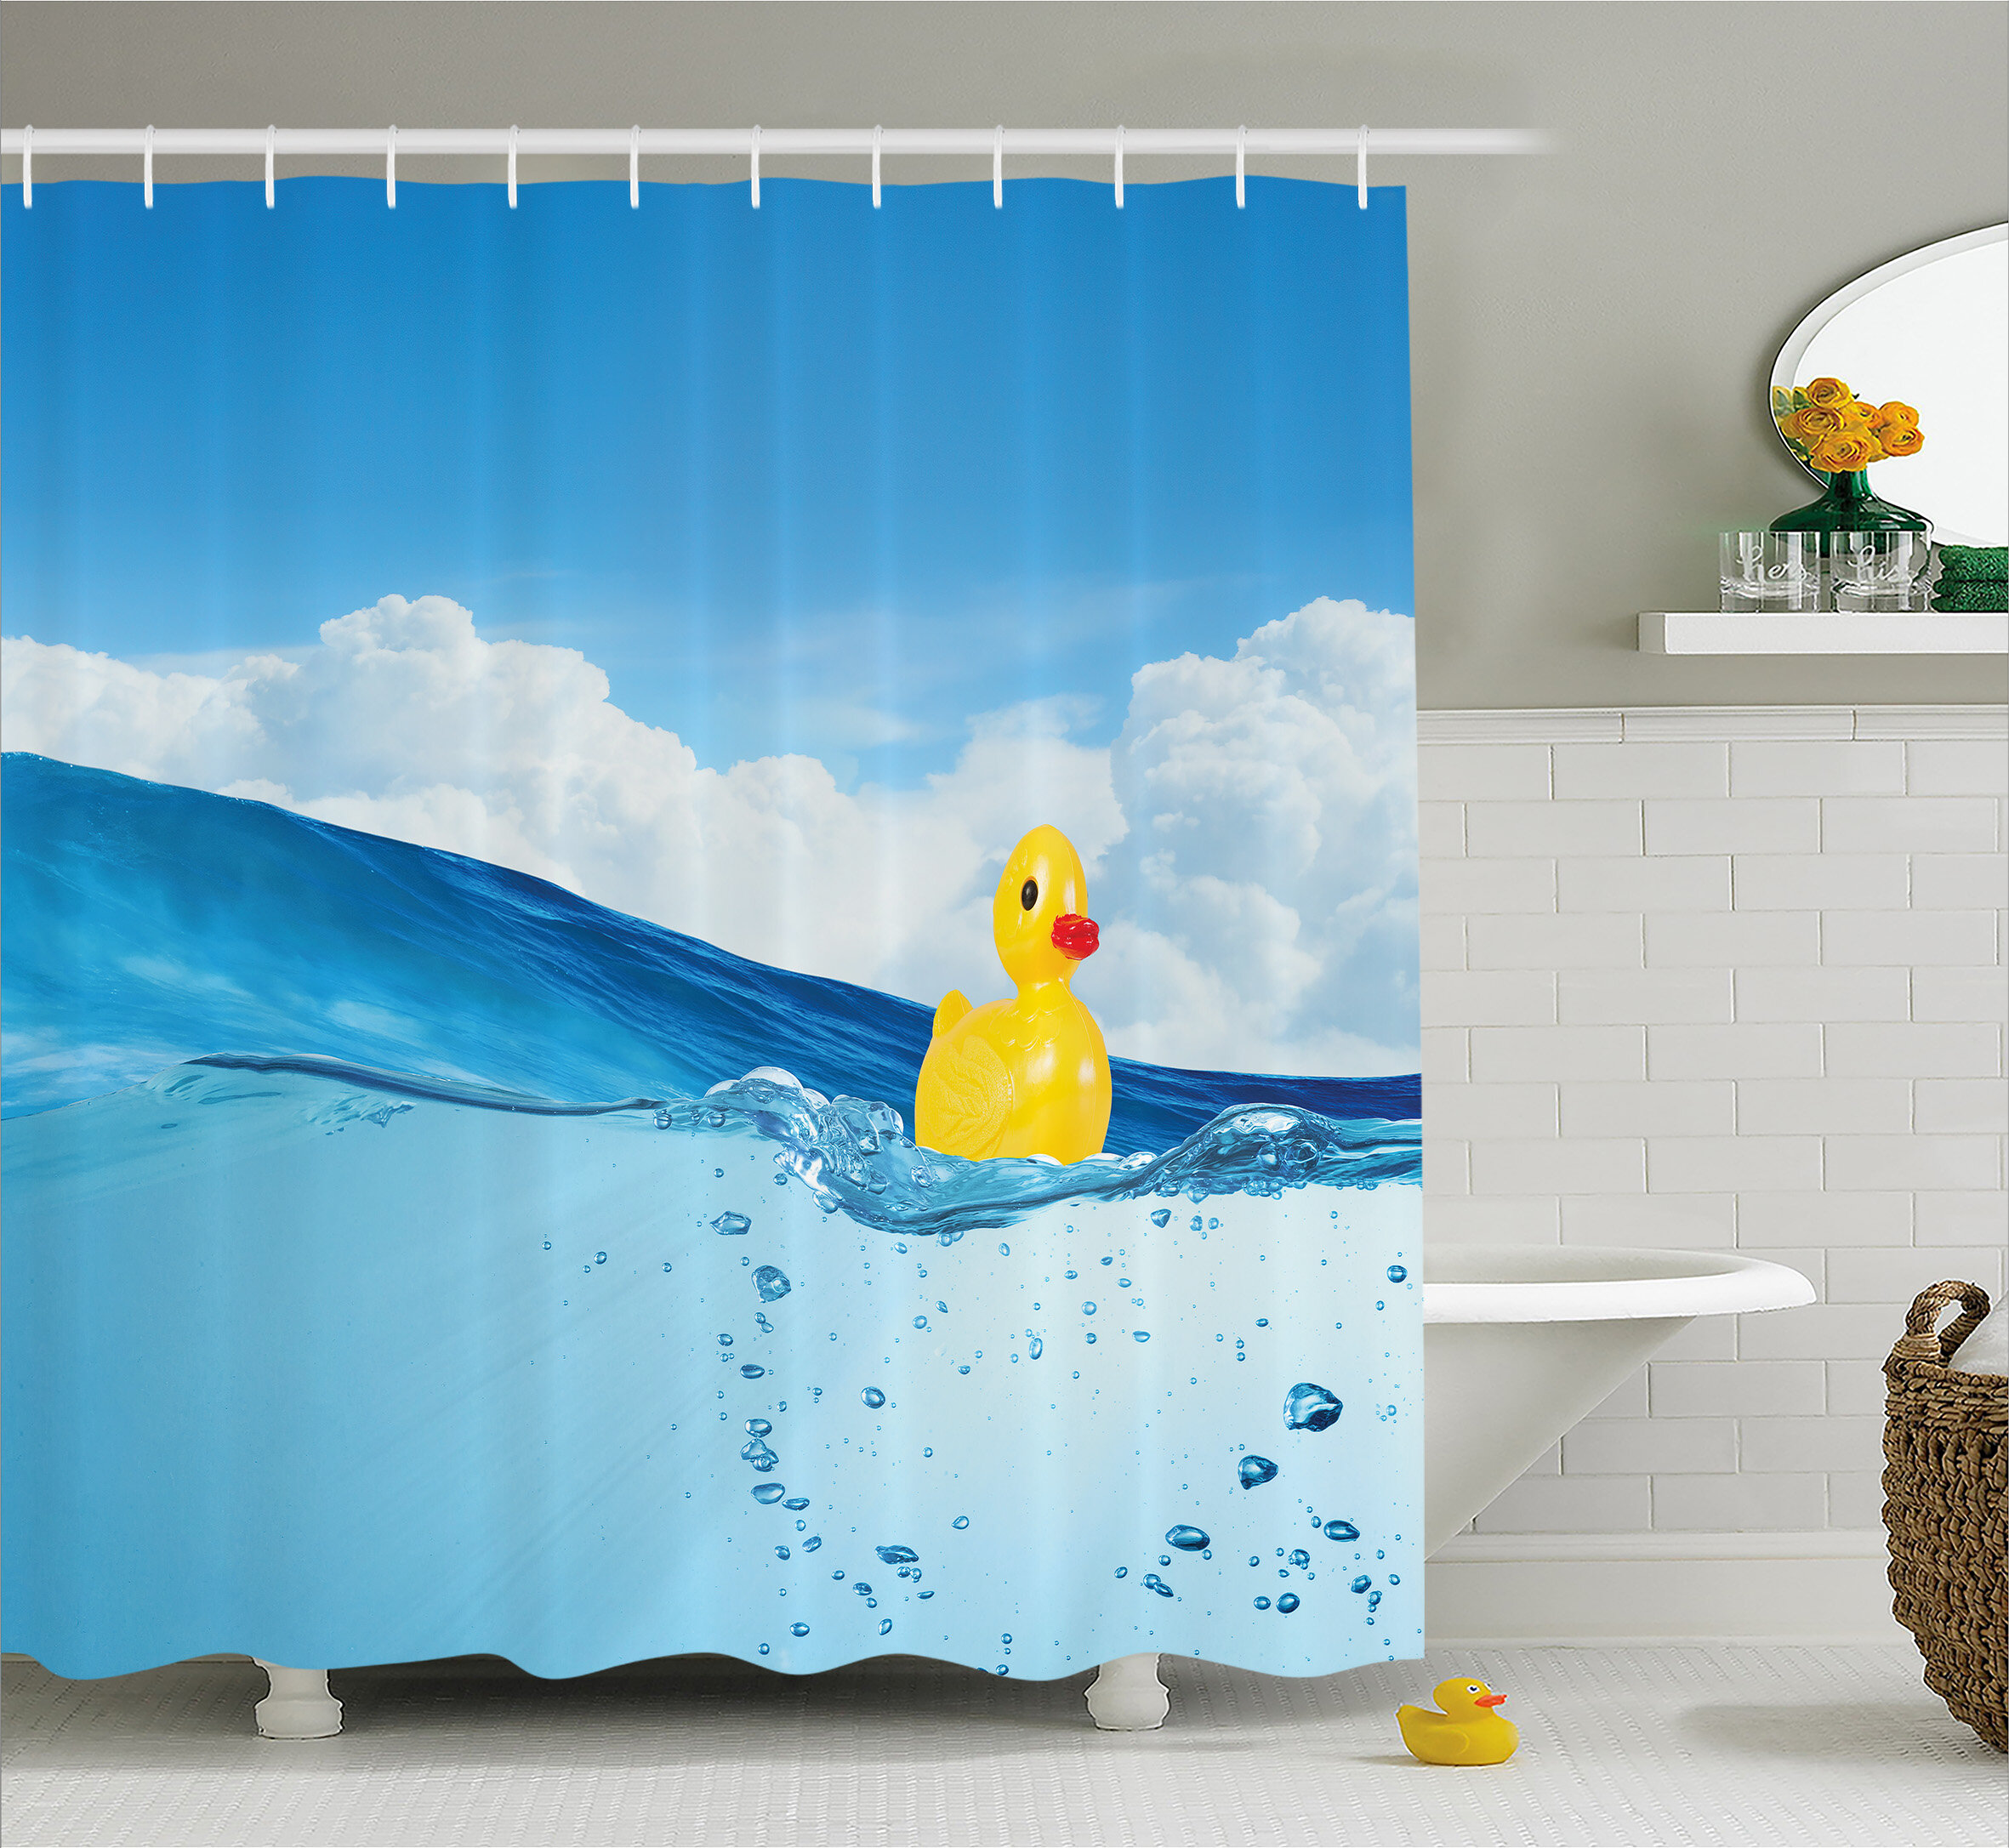 East Urban Home Rubber Duck Swimming in Pool Shower Curtain + Hooks ...